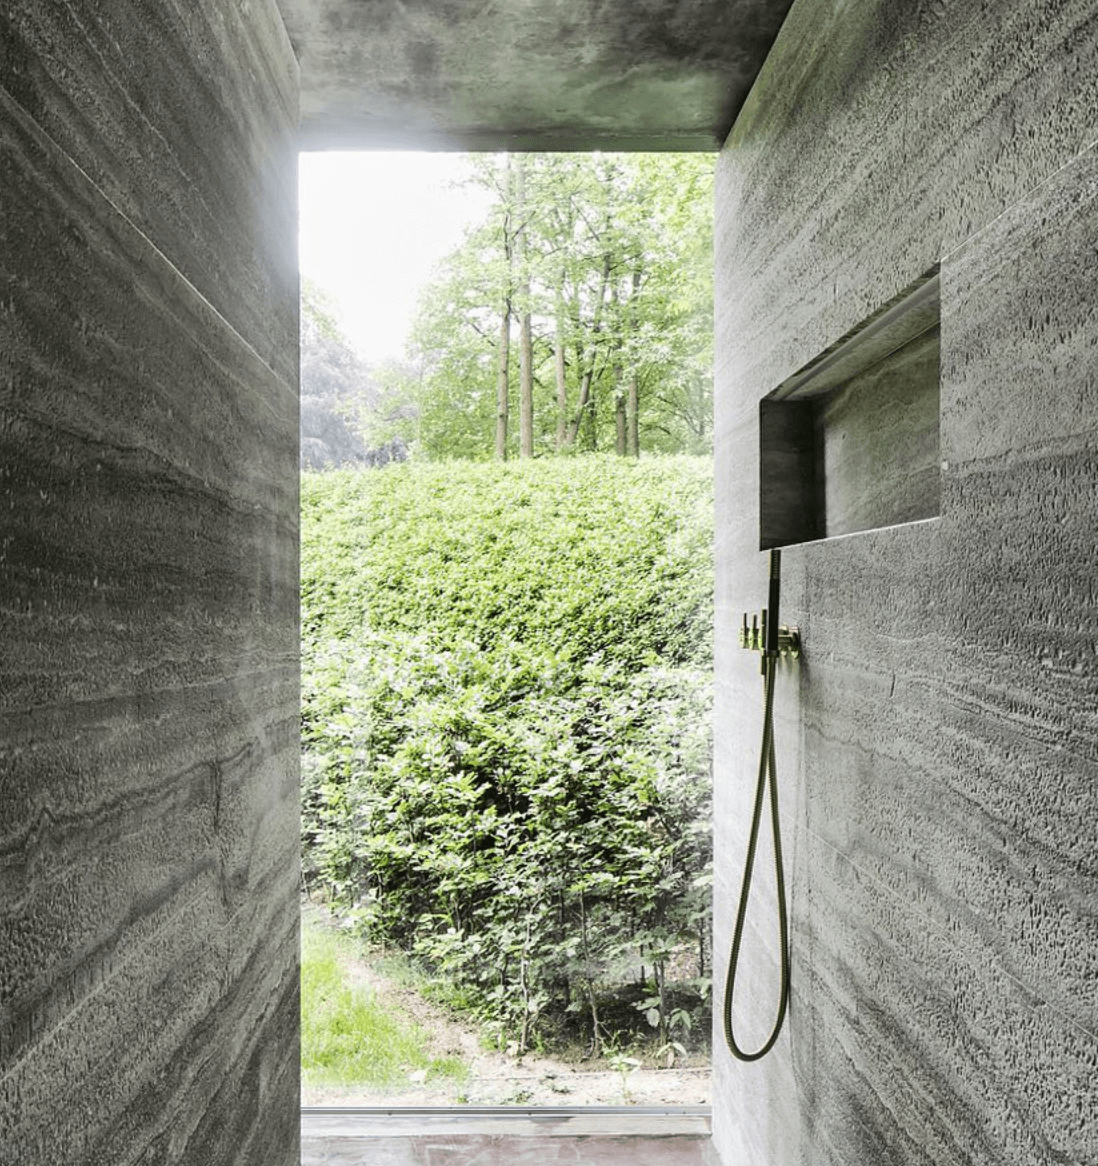 interieur-interior-douche-shower-buitendouche-outside shower-natuursteen-natural stone-zicht op tuin-view on garden-green-groen